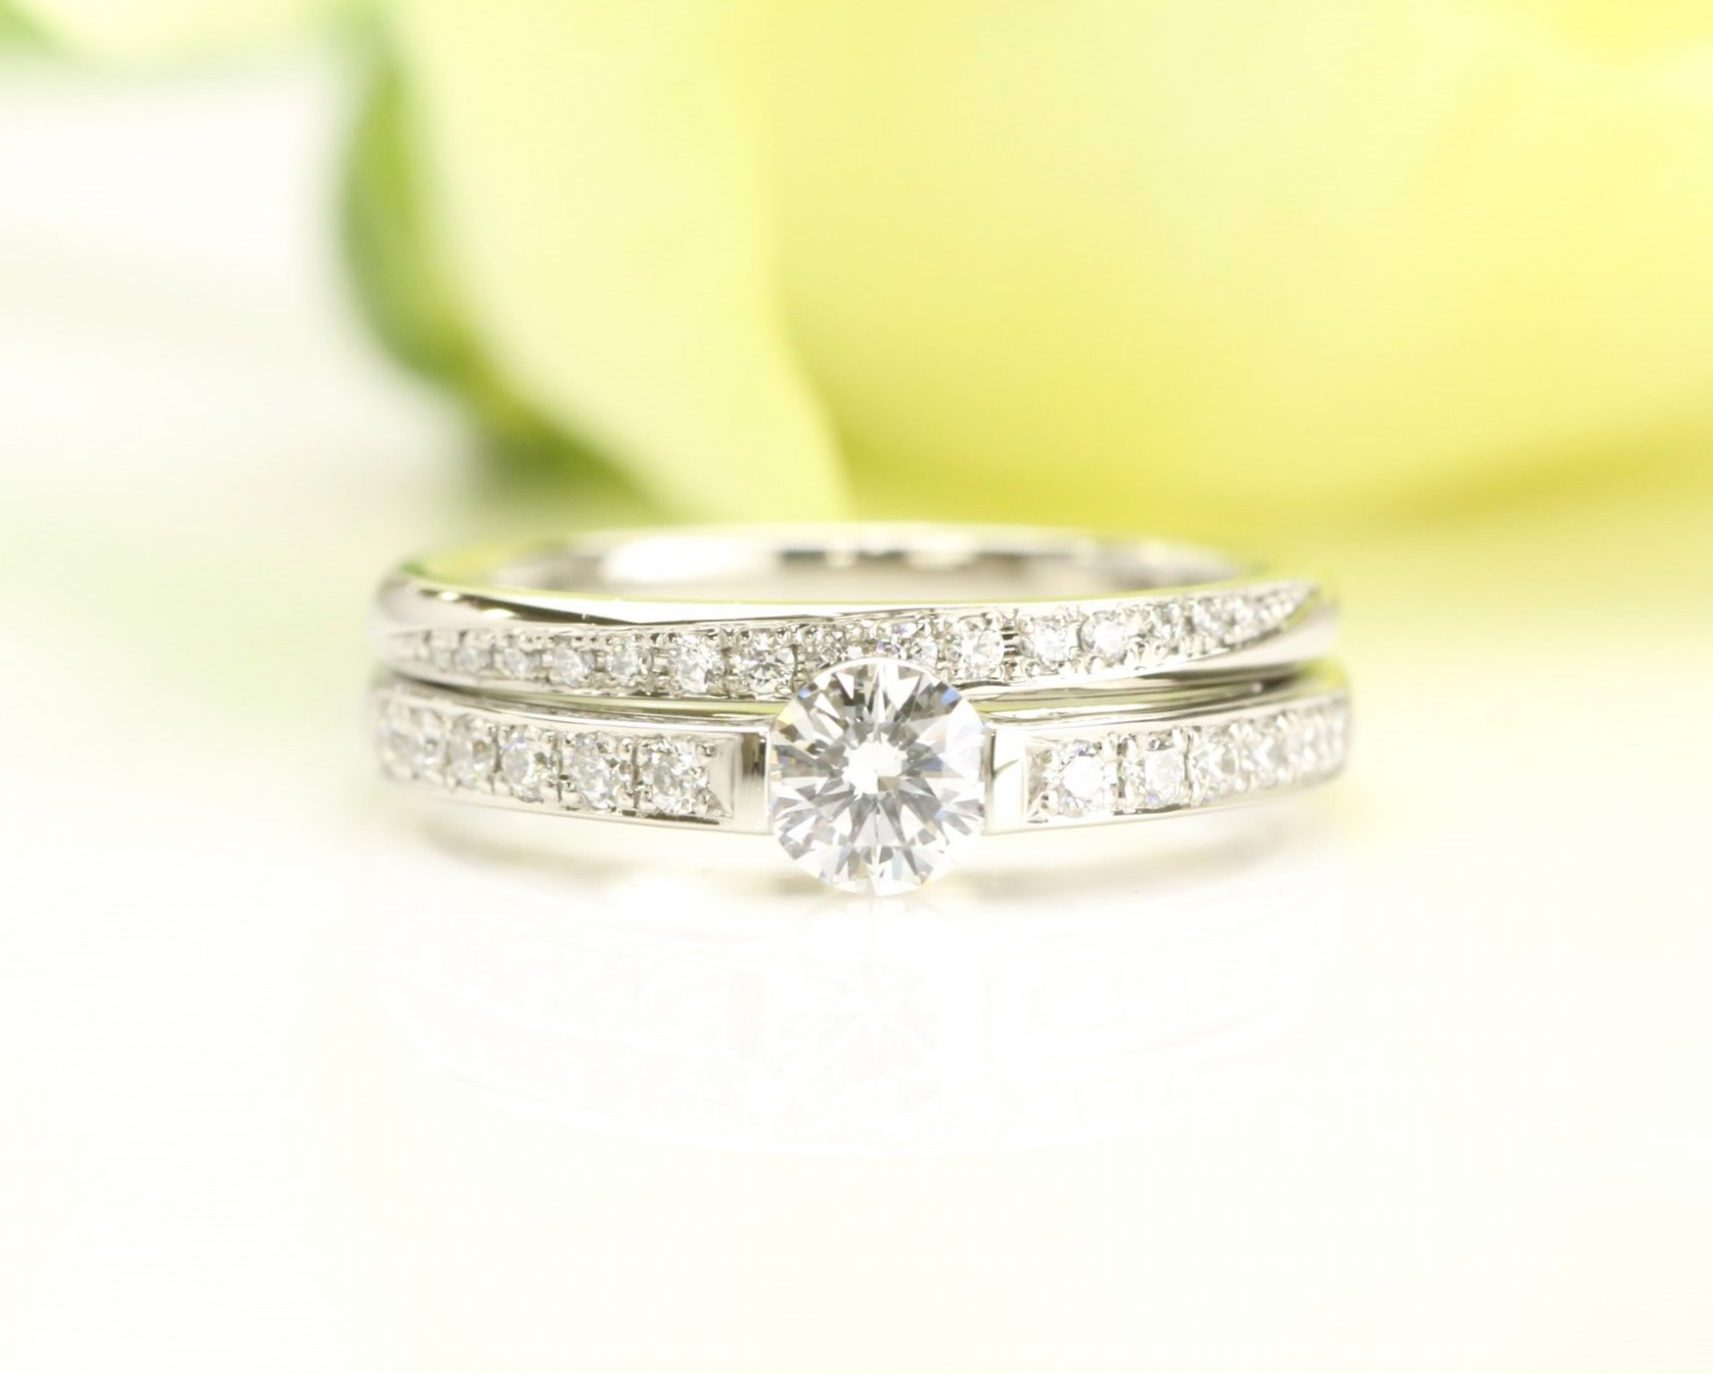 MARRIAGE RING & ENGAGEMENT RING3